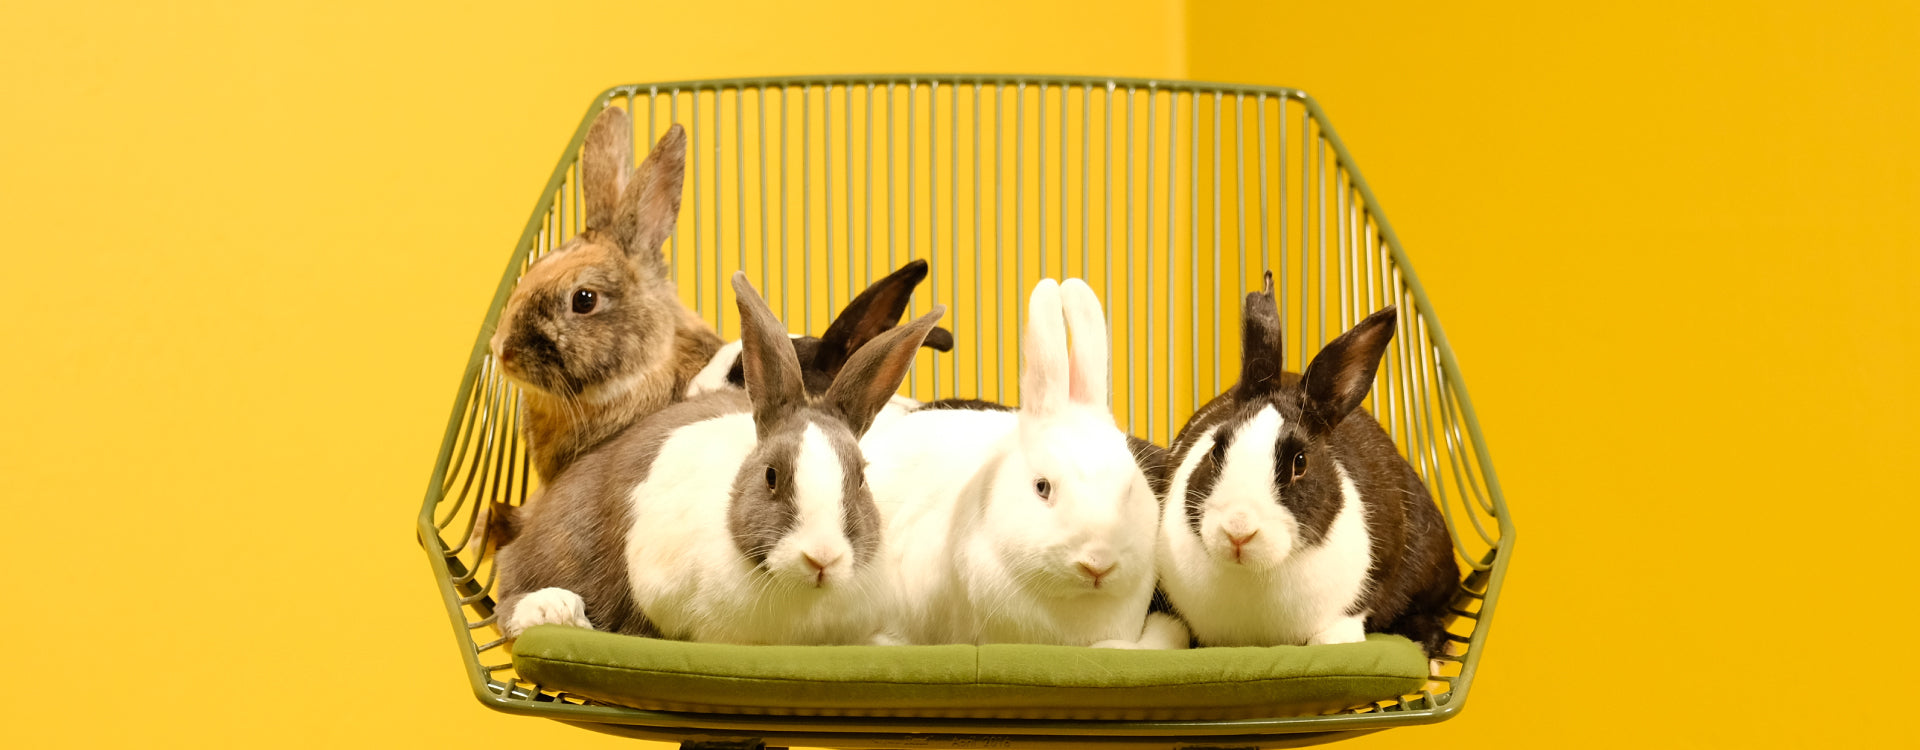 THE BUNNY LOUNGE: SPECIAL EDITION